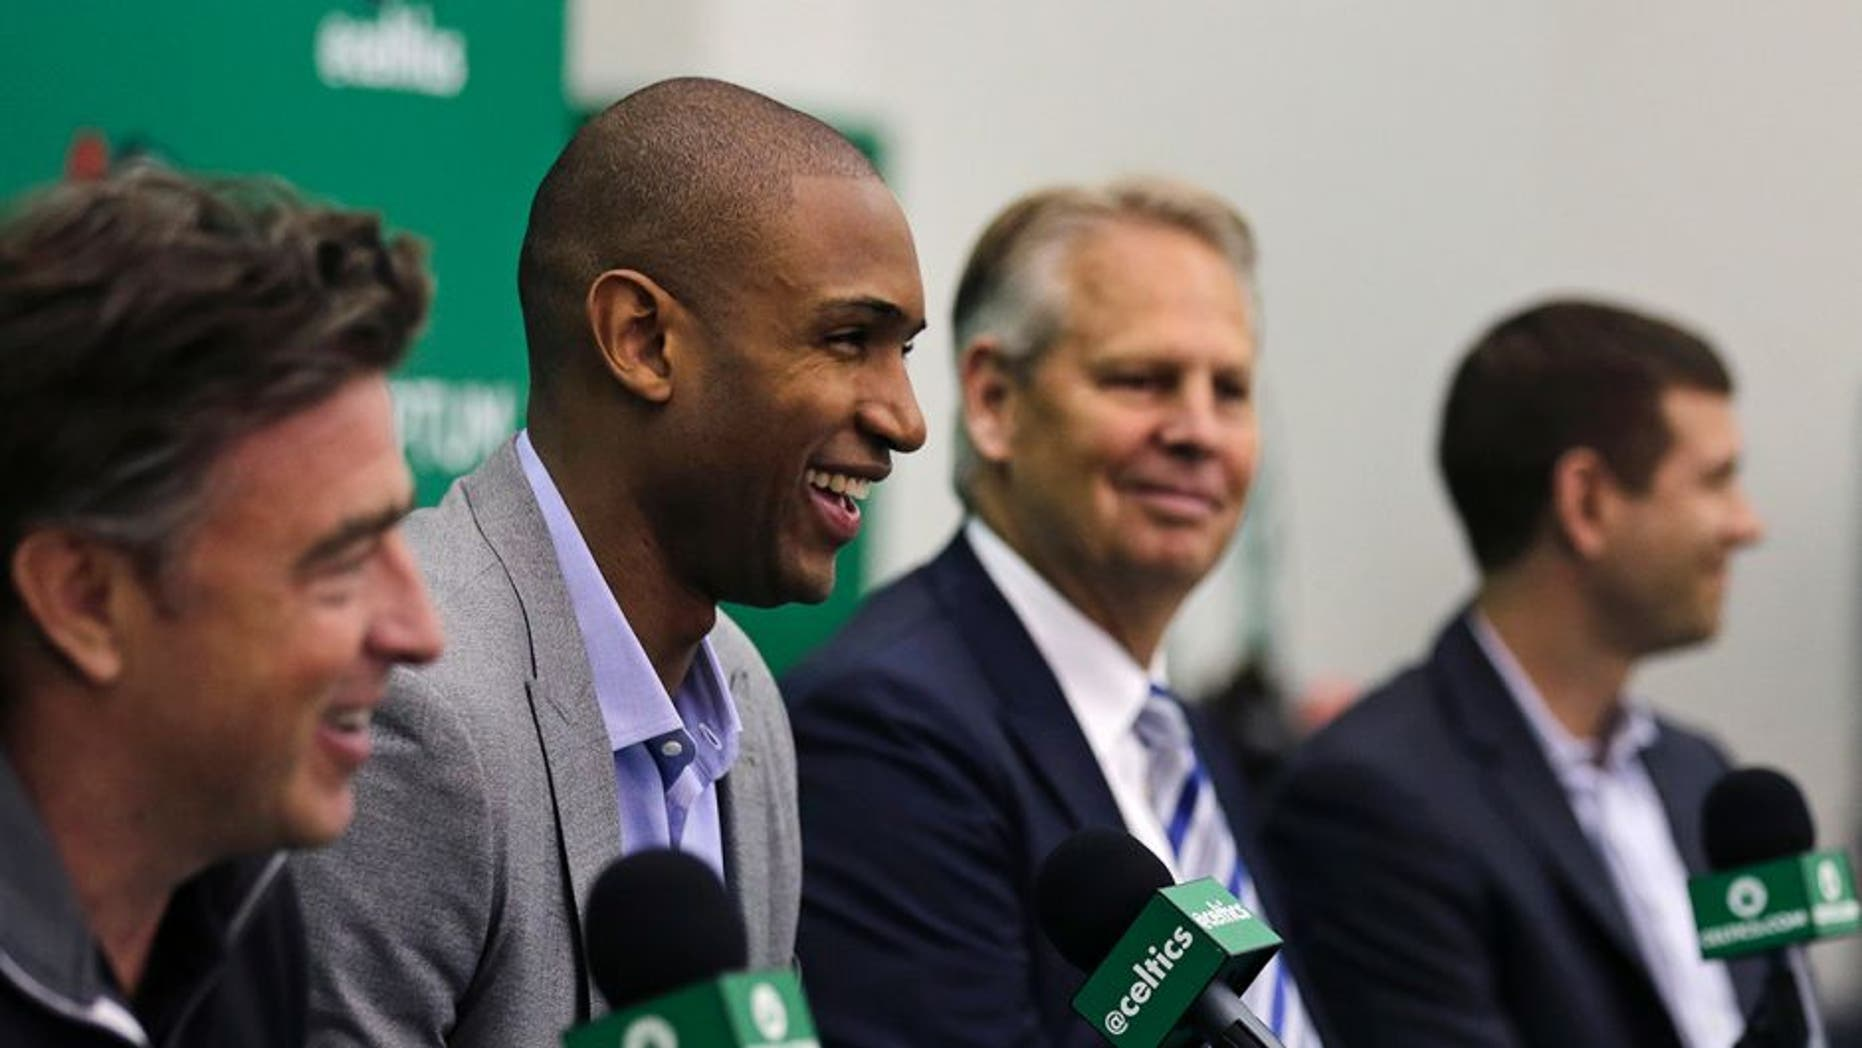 Boston Celtics forward Al Horford, second from left, smiles during a media availability at the team's practice facility, Friday, July 8, 2016, in Waltham, Mass. Horford agreed to a four-year, $113 million deal with the Celtics as an unrestricted free agent, ending nearly ten years with the Atlanta Hawks. From left are Celtics owner Wyc Grousbeck, Horford, general manager Danny Ainge and head coach Brad Stevens. (AP Photo/Charles Krupa)